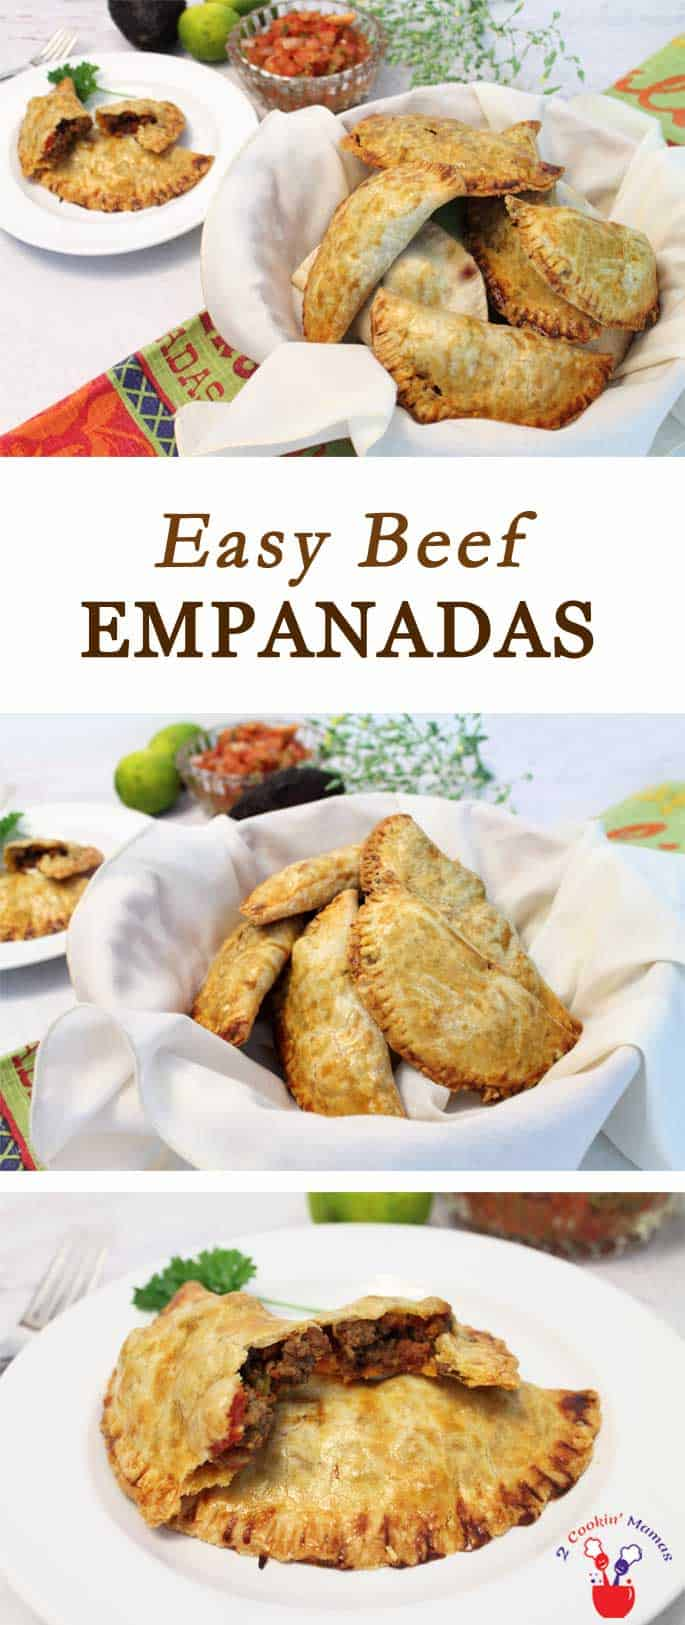 Easy Beef Empanadas   2 Cookin Mamas These easy beef empanadas are pockets of beef, chorizo and tomatoes baked up in a crispy pie crust. They go together in minutes & are always a party hit!